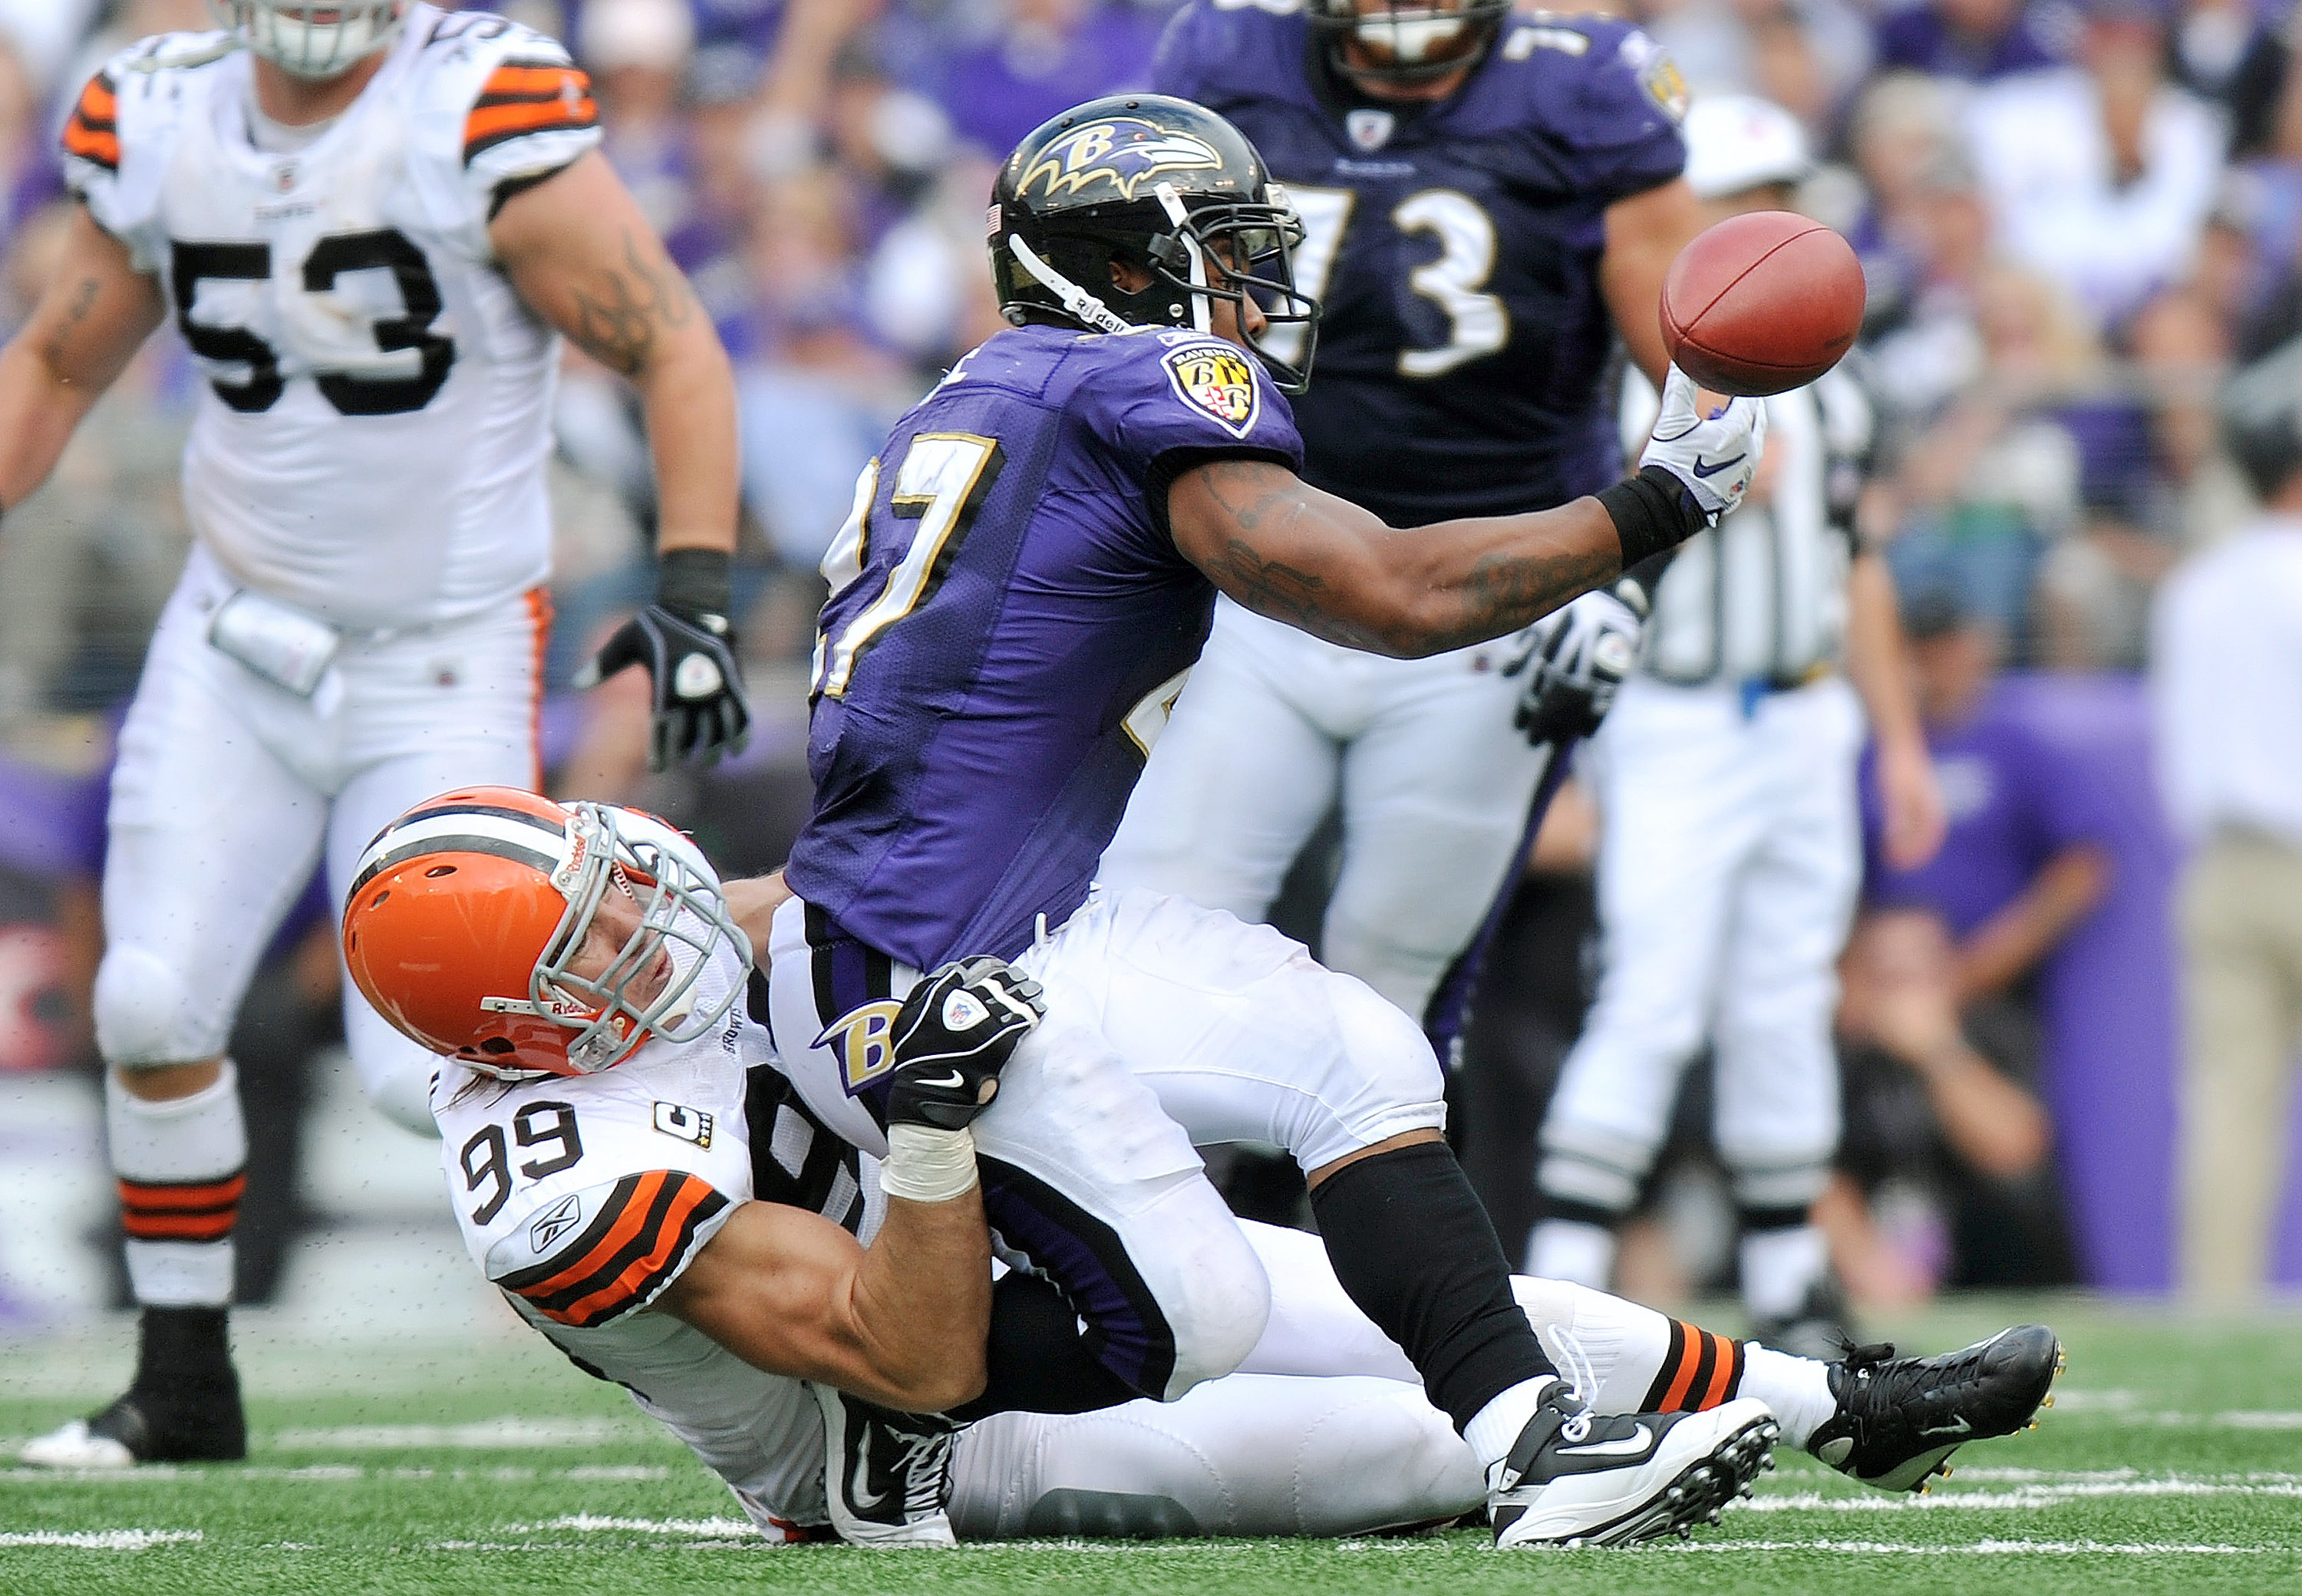 BALTIMORE - SEPTEMBER 26:  Ray Rice #27 of the Baltimore Ravens can't hold onto a pass as he's taken down by Scott Fujita #99 of the Cleveland Browns  at M&T Bank Stadium on September 26, 2010 in Baltimore, Maryland. The Ravens defeated the Browns 24-17.